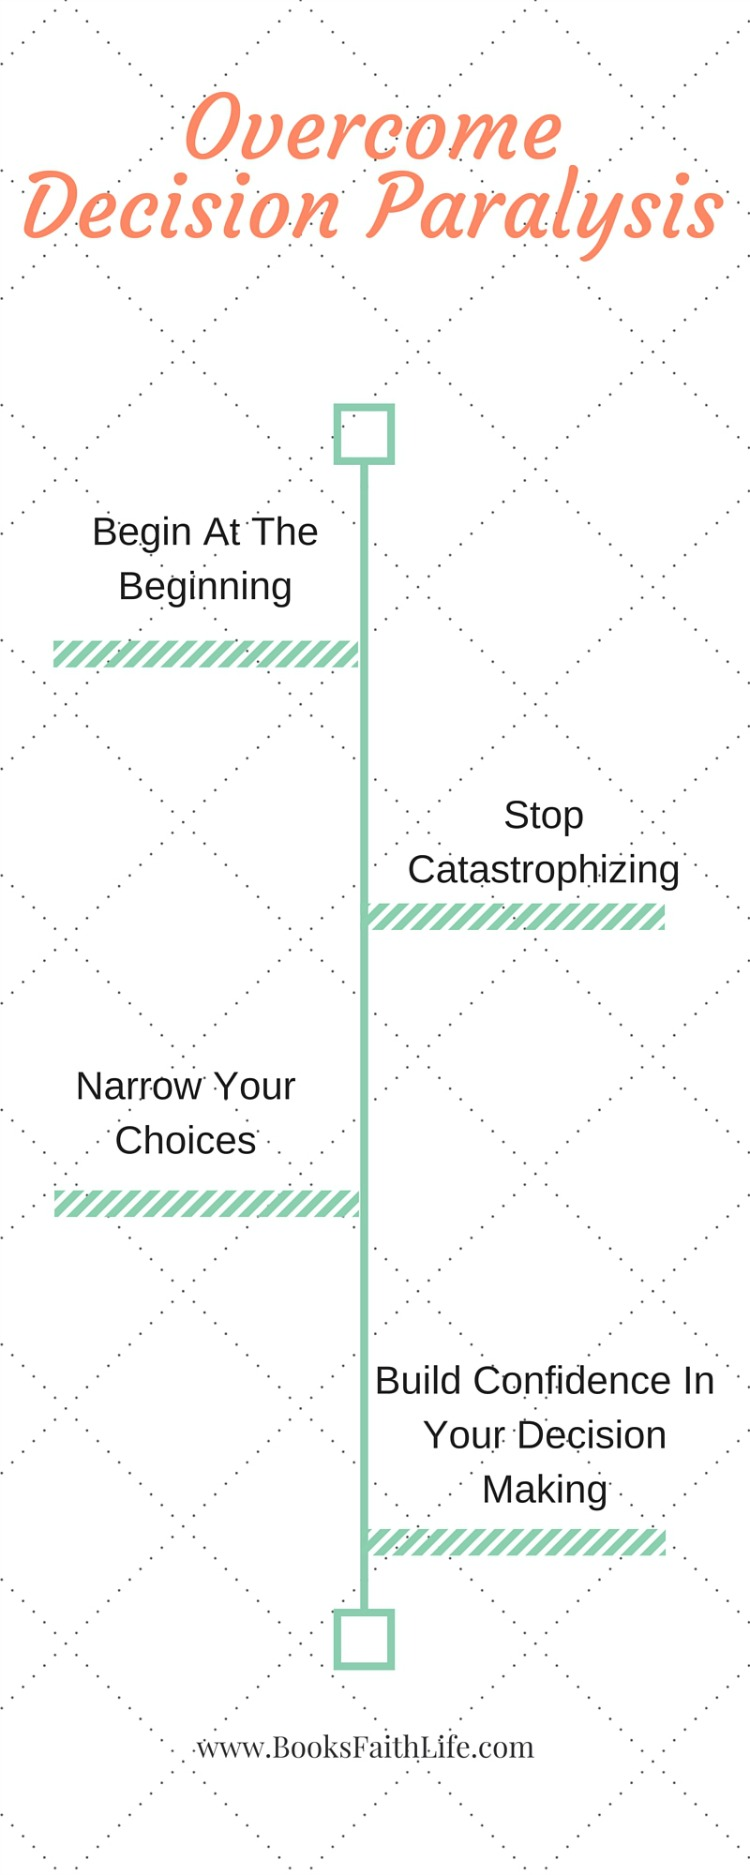 The source of decision paralysis lies in anxiety! Read these 4 simple steps to defeat negative thinking habits, and harness little wins for future success.